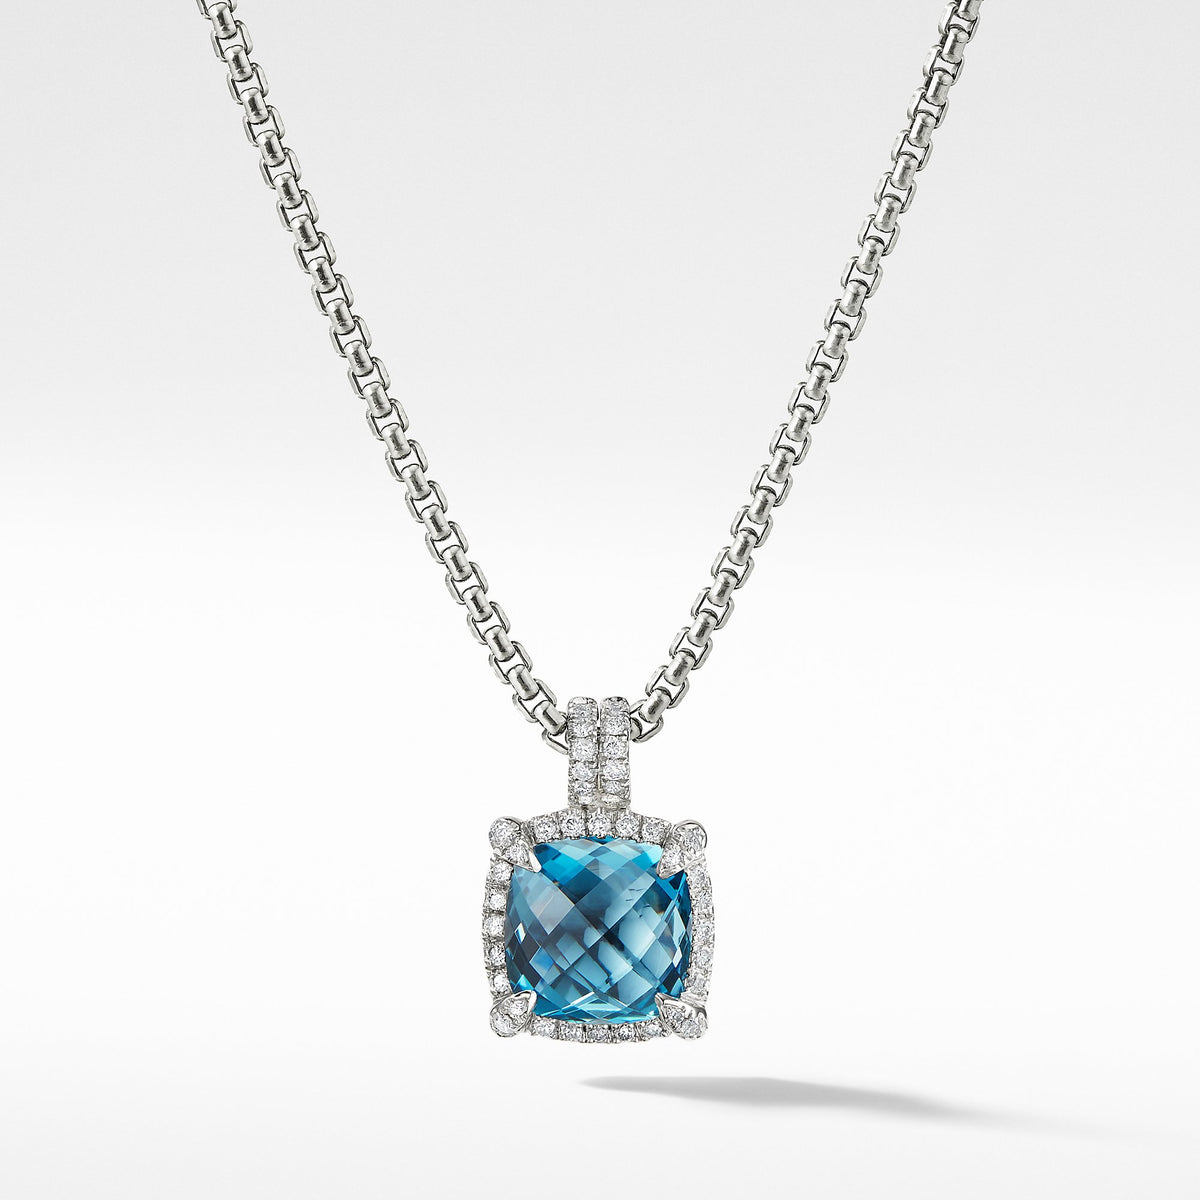 Chatelaine Pave Bezel Pendant Necklace with Hampton Blue Topaz and Diamonds, 9mm